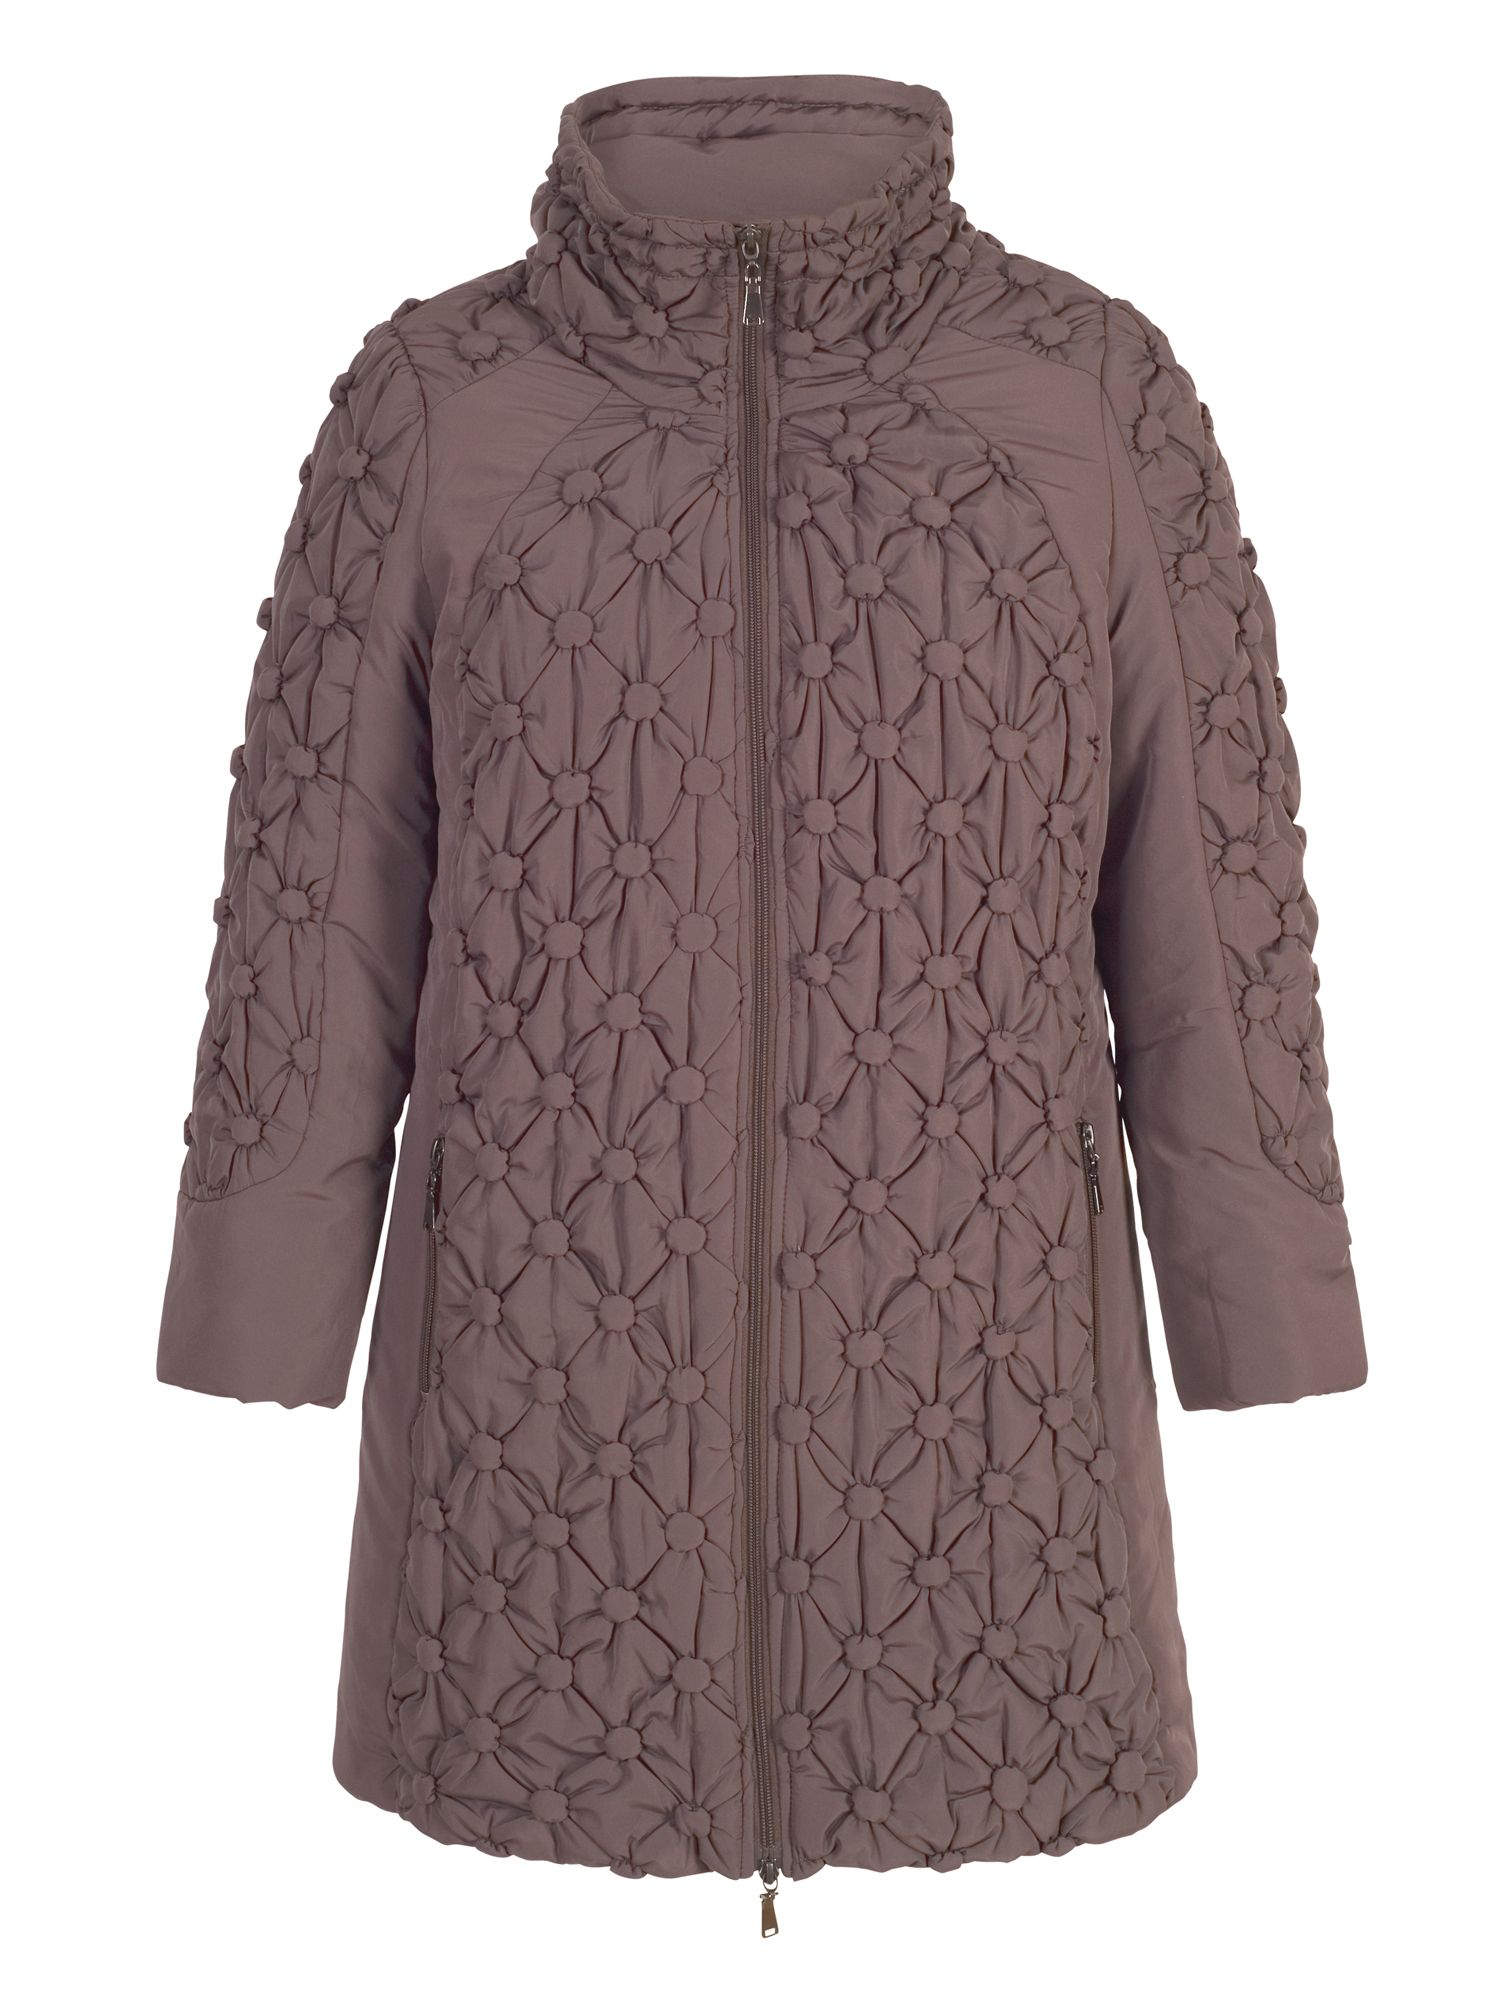 Chesca Quilted Coat with Button Detailing, Brown